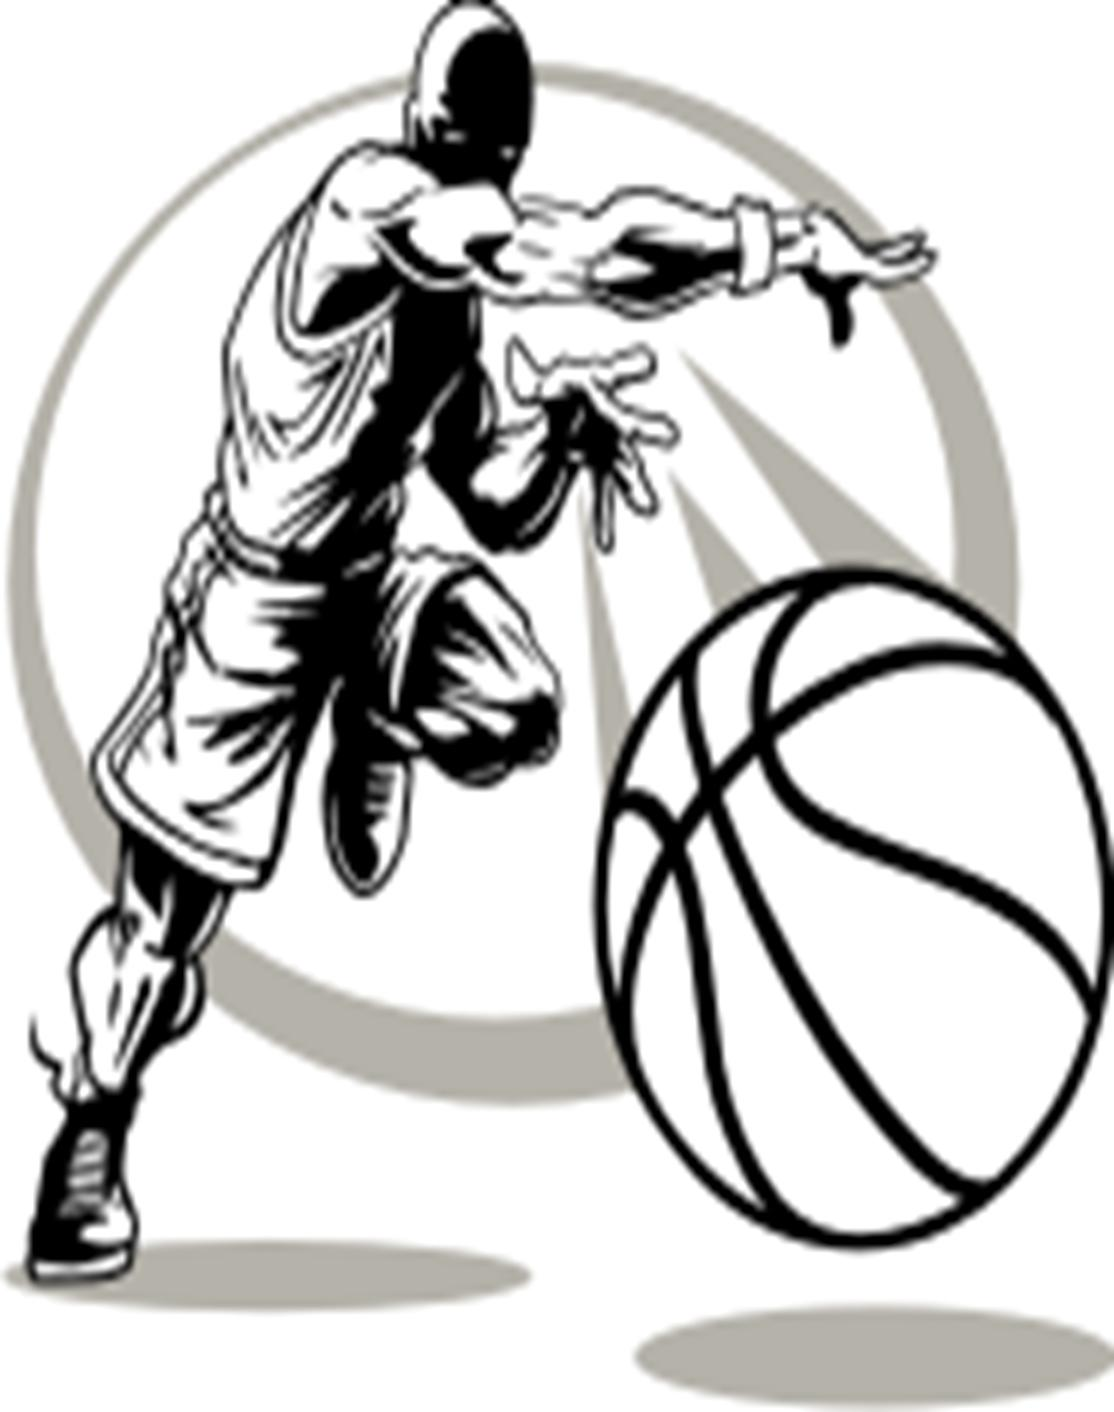 1114x1412 Images Of Basketball Free Download Clip Art Free Clip Art